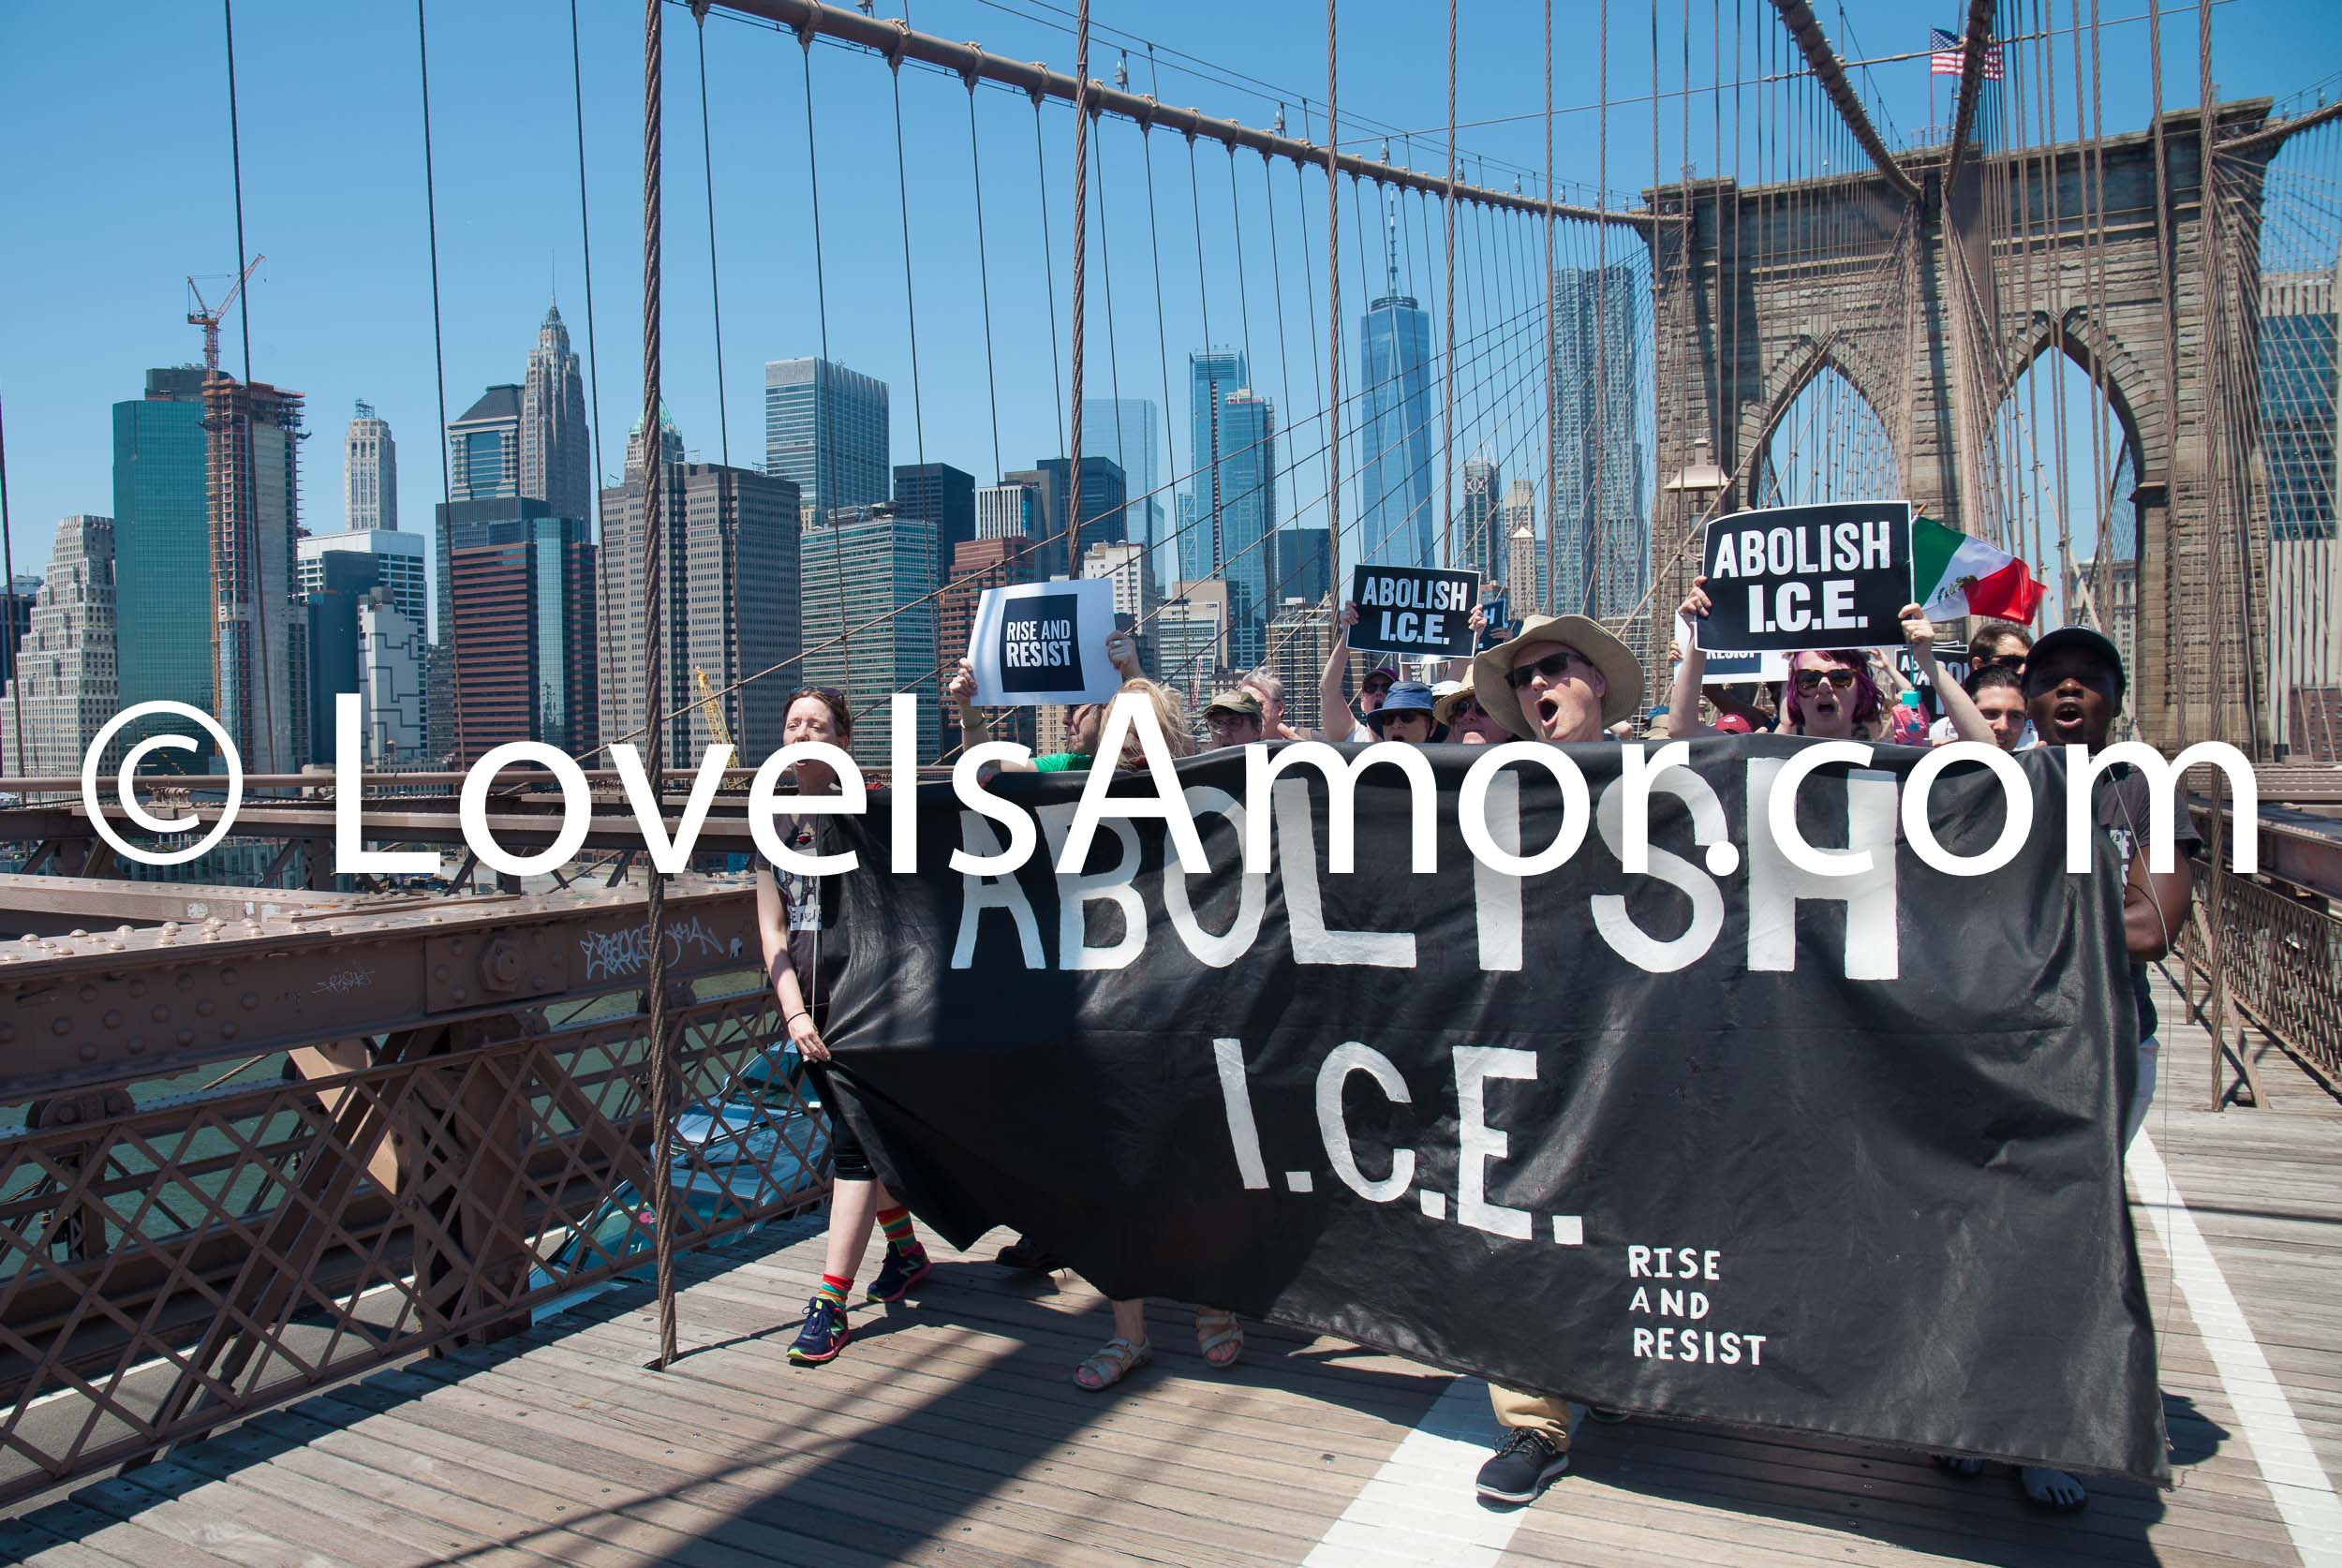 "6/30/2018. March: ""Families Belong Together."" People crossing the Brooklyn Bridge. People's protectors are marching from Foley Square in Manhattan to Cadman Plaza in Brooklyn. The sign says: ""Abolish I.C.E."" Rise and Resist Photo by Javier Soriano/LoveIsAmor.com"